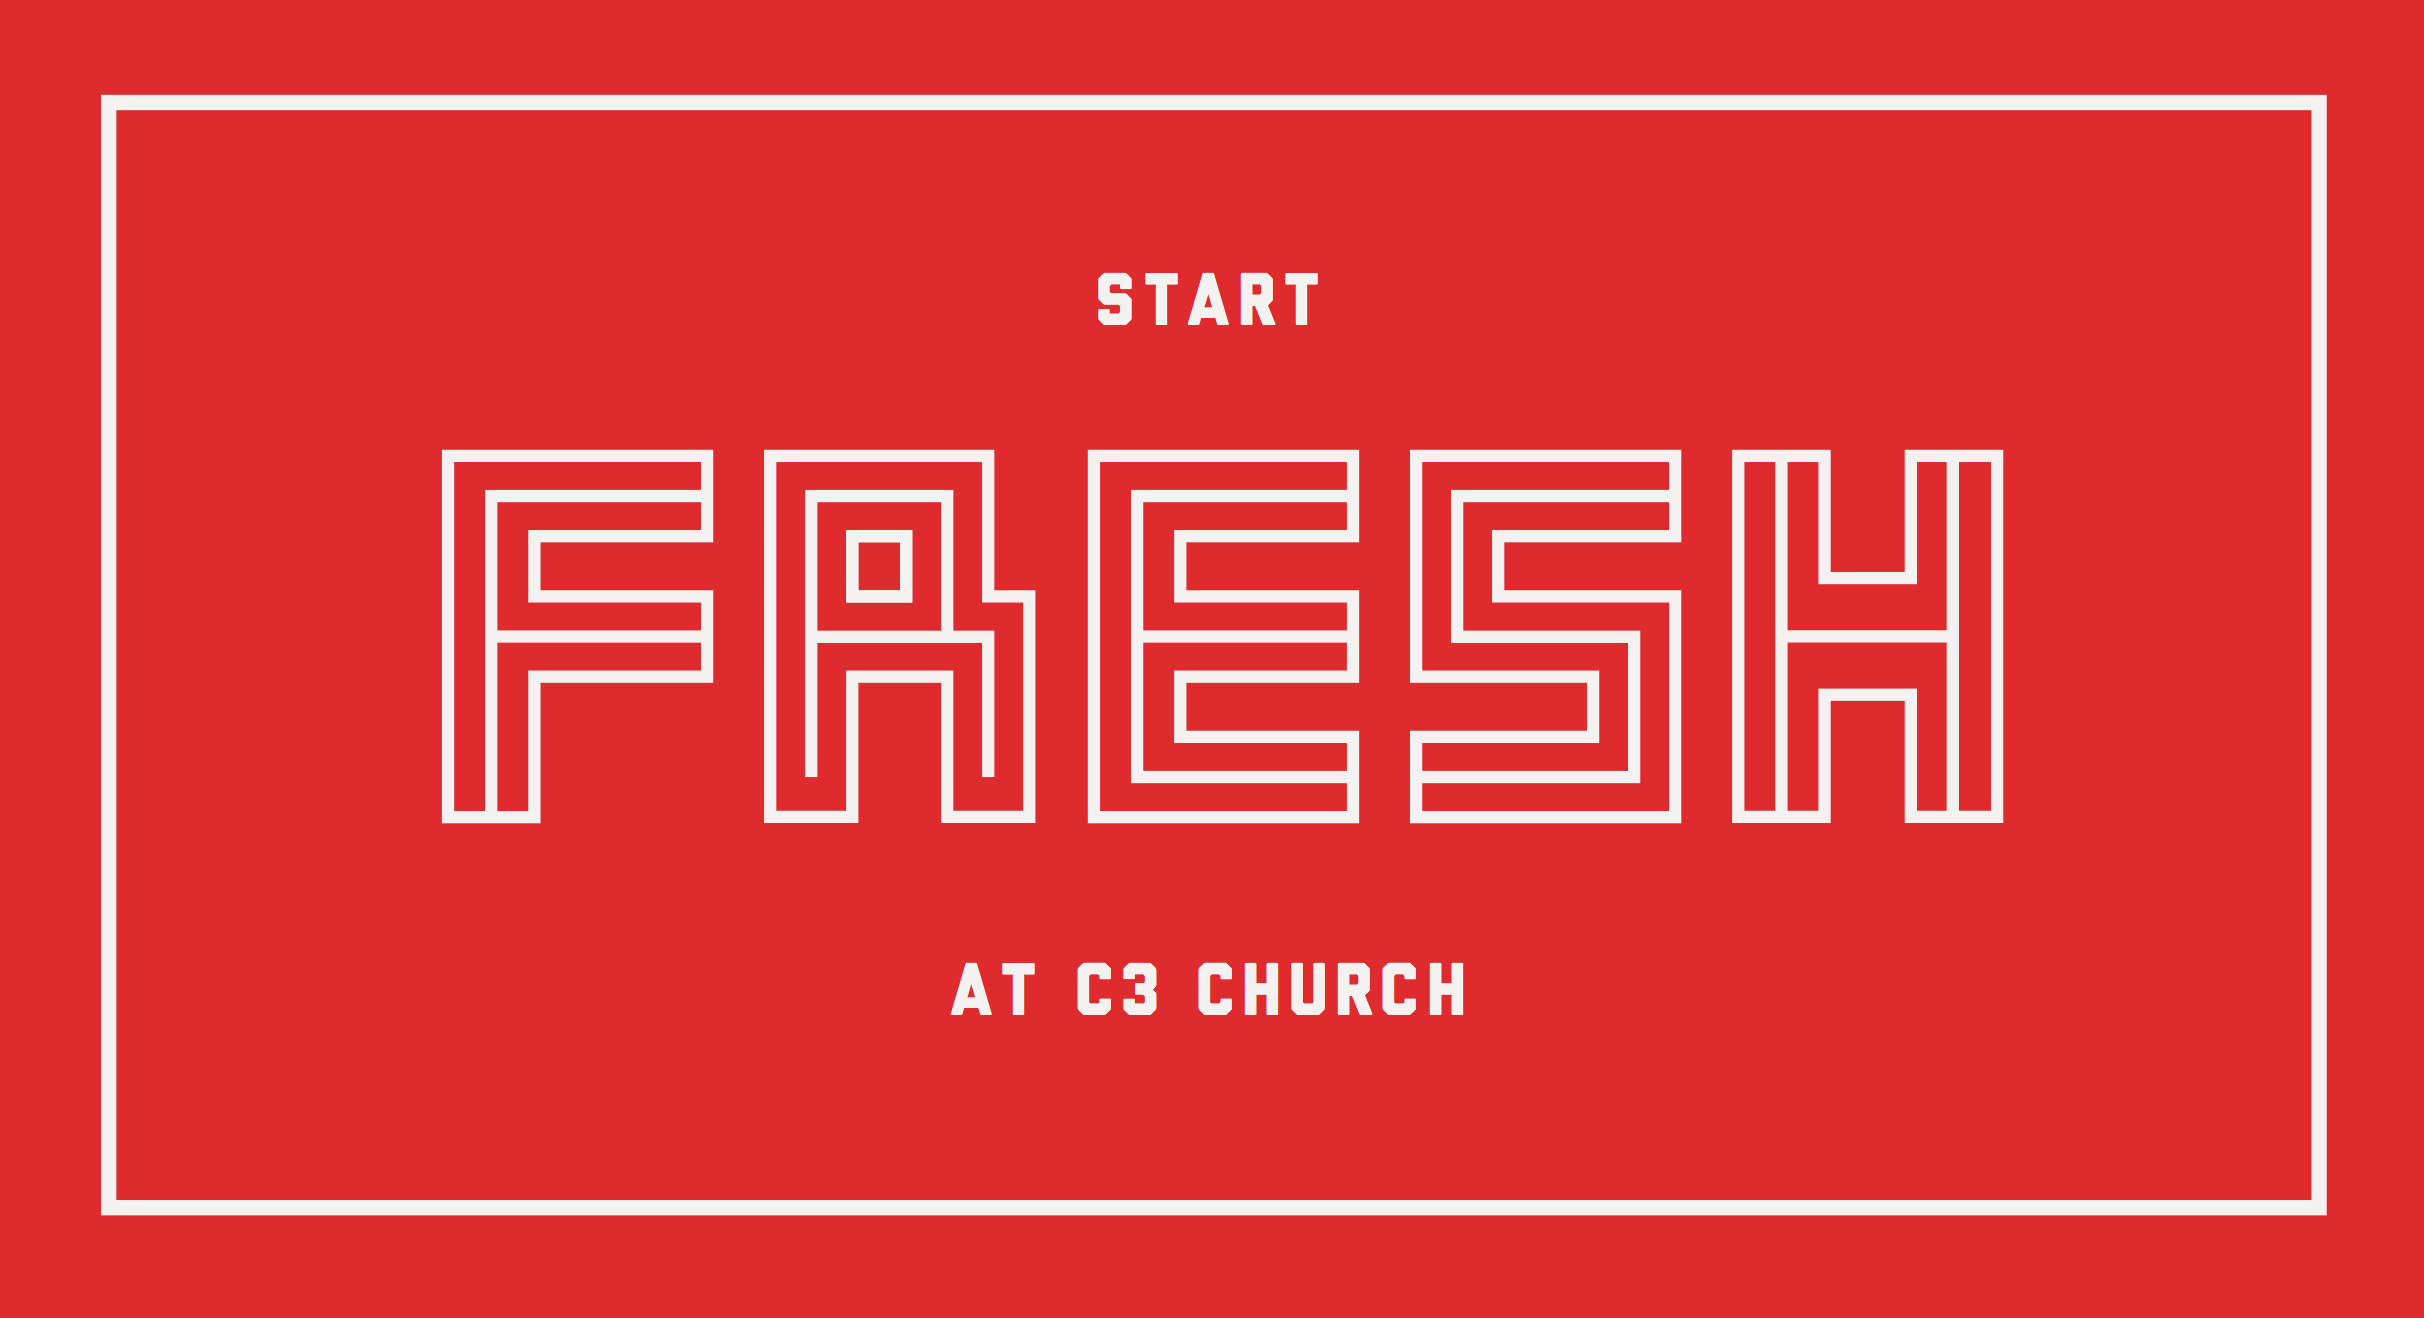 C3 Church, Blessed Life, 2014